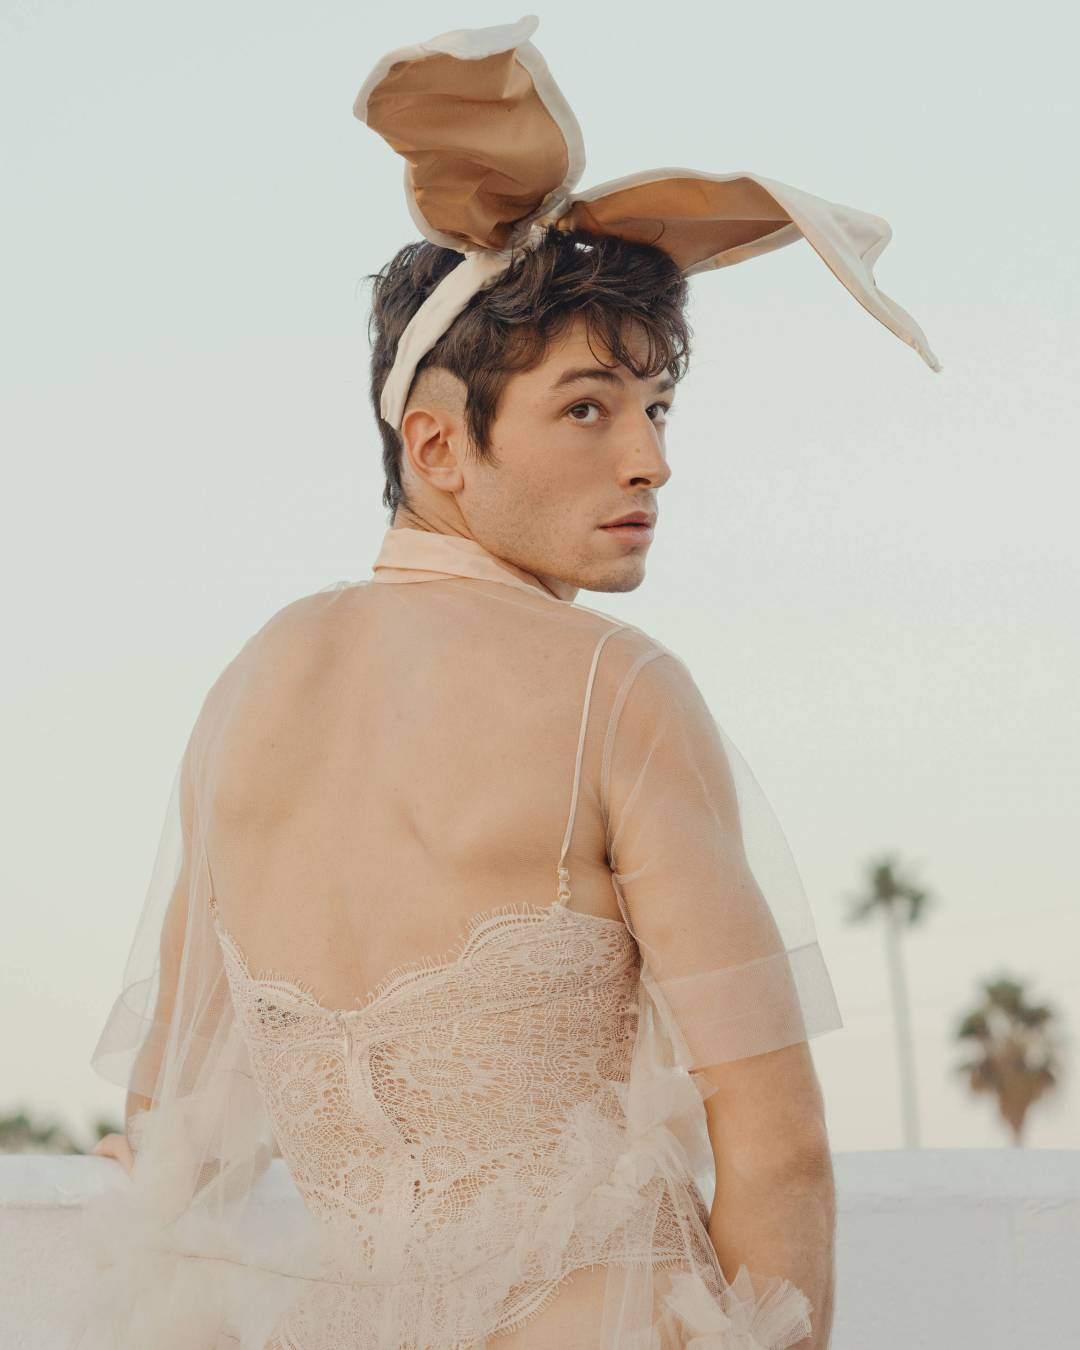 ezra miller photo shoot 3